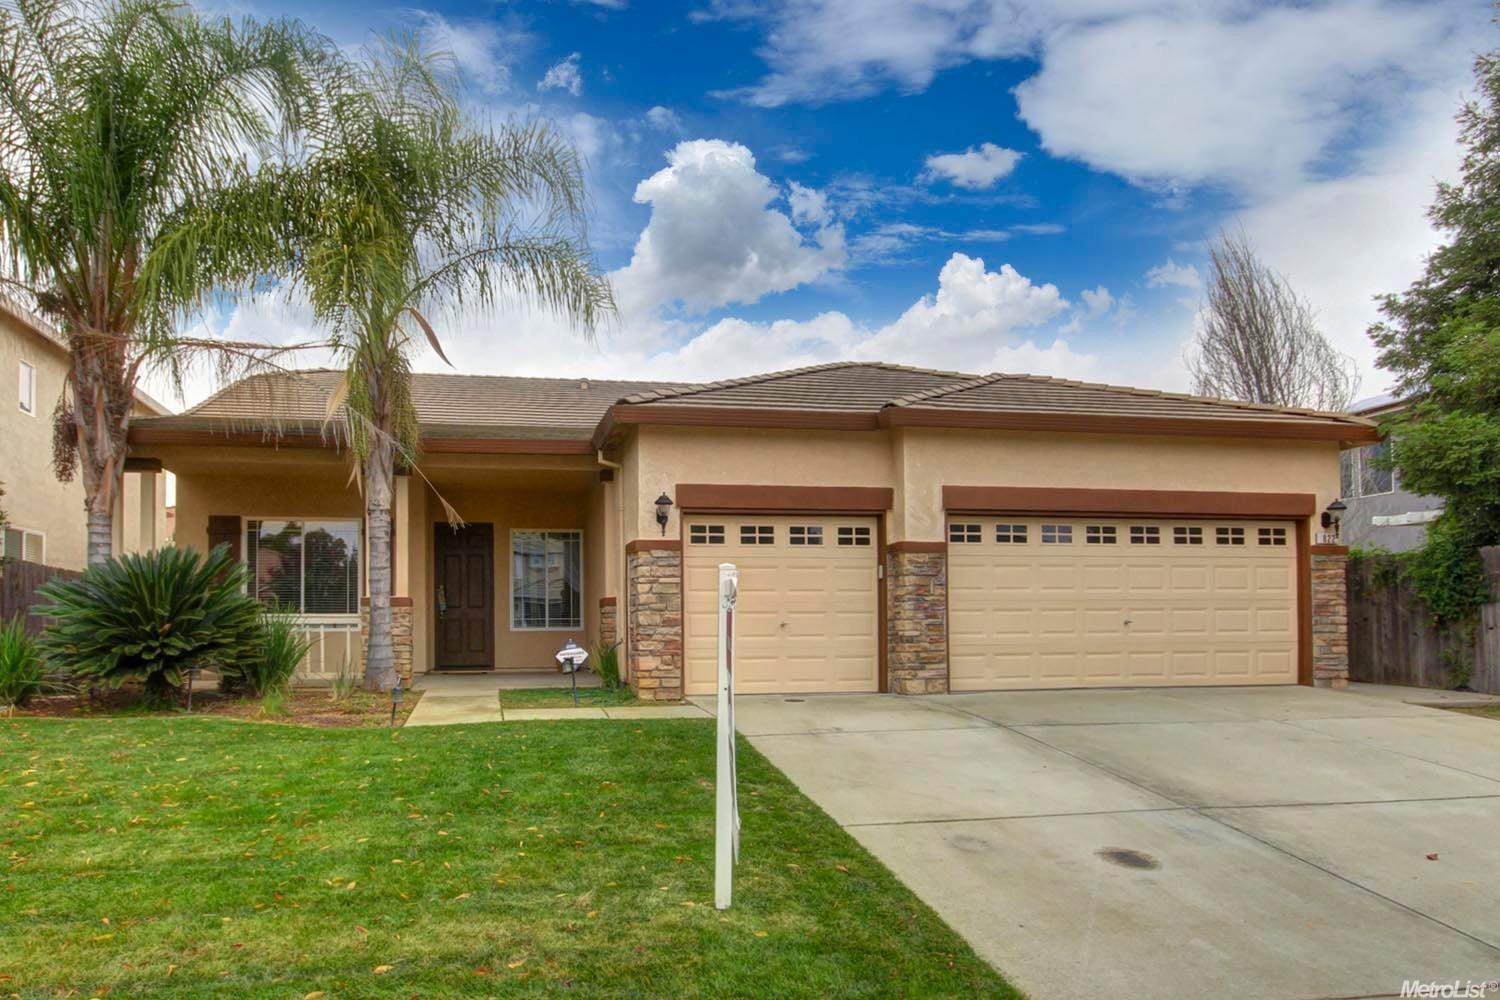 822 Leith Ct, Lincoln, CA 95648